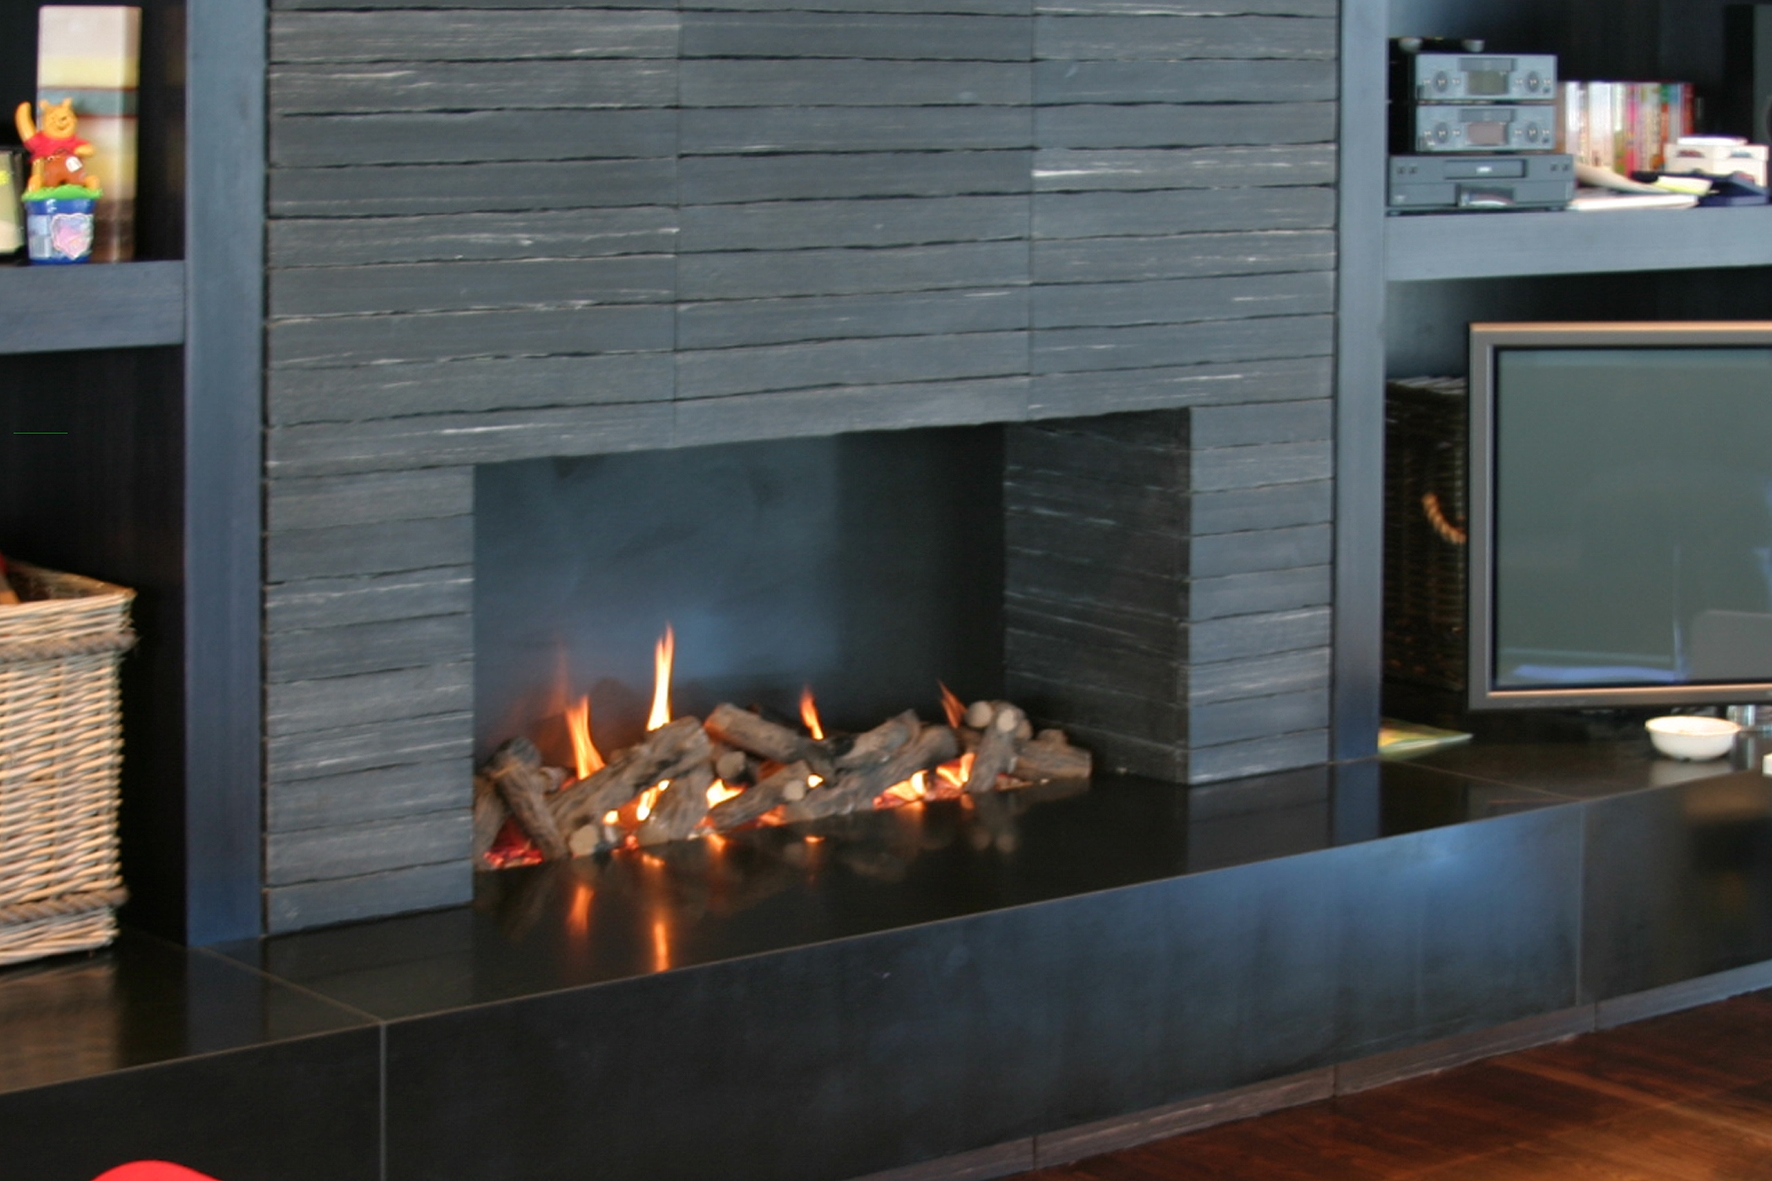 Living-Flame-Open-Fire-all-black-setting